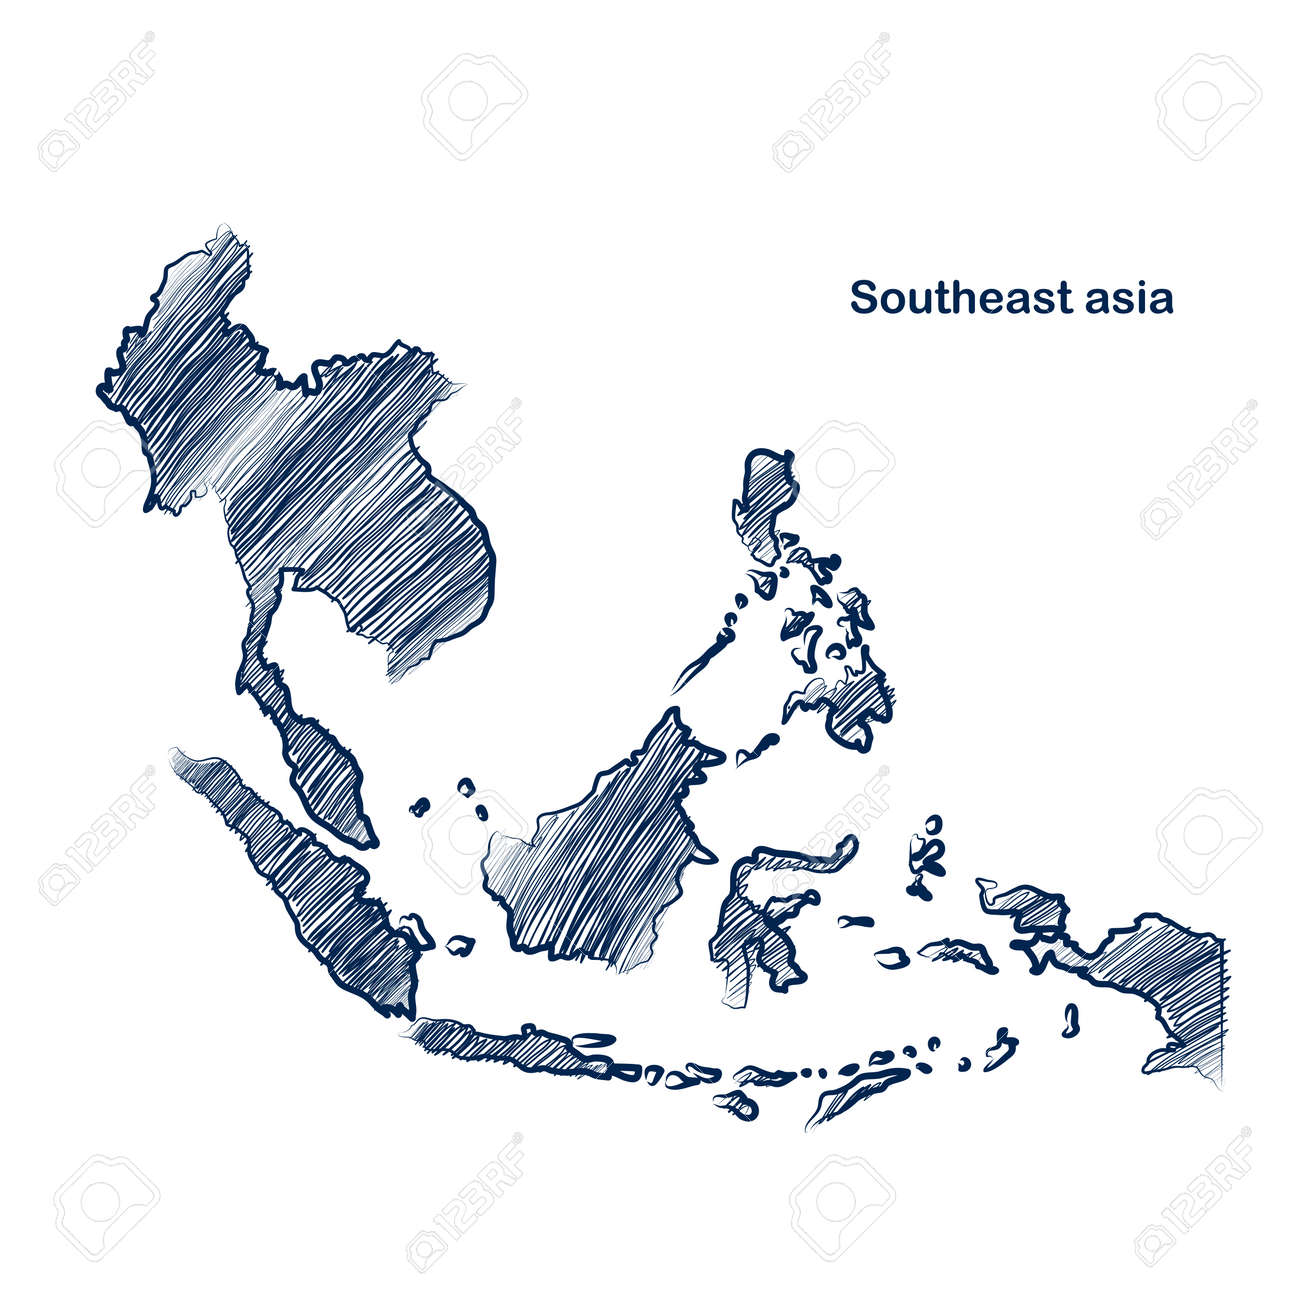 Southeast asia  map hand drawn background Stock Vector - 28029728